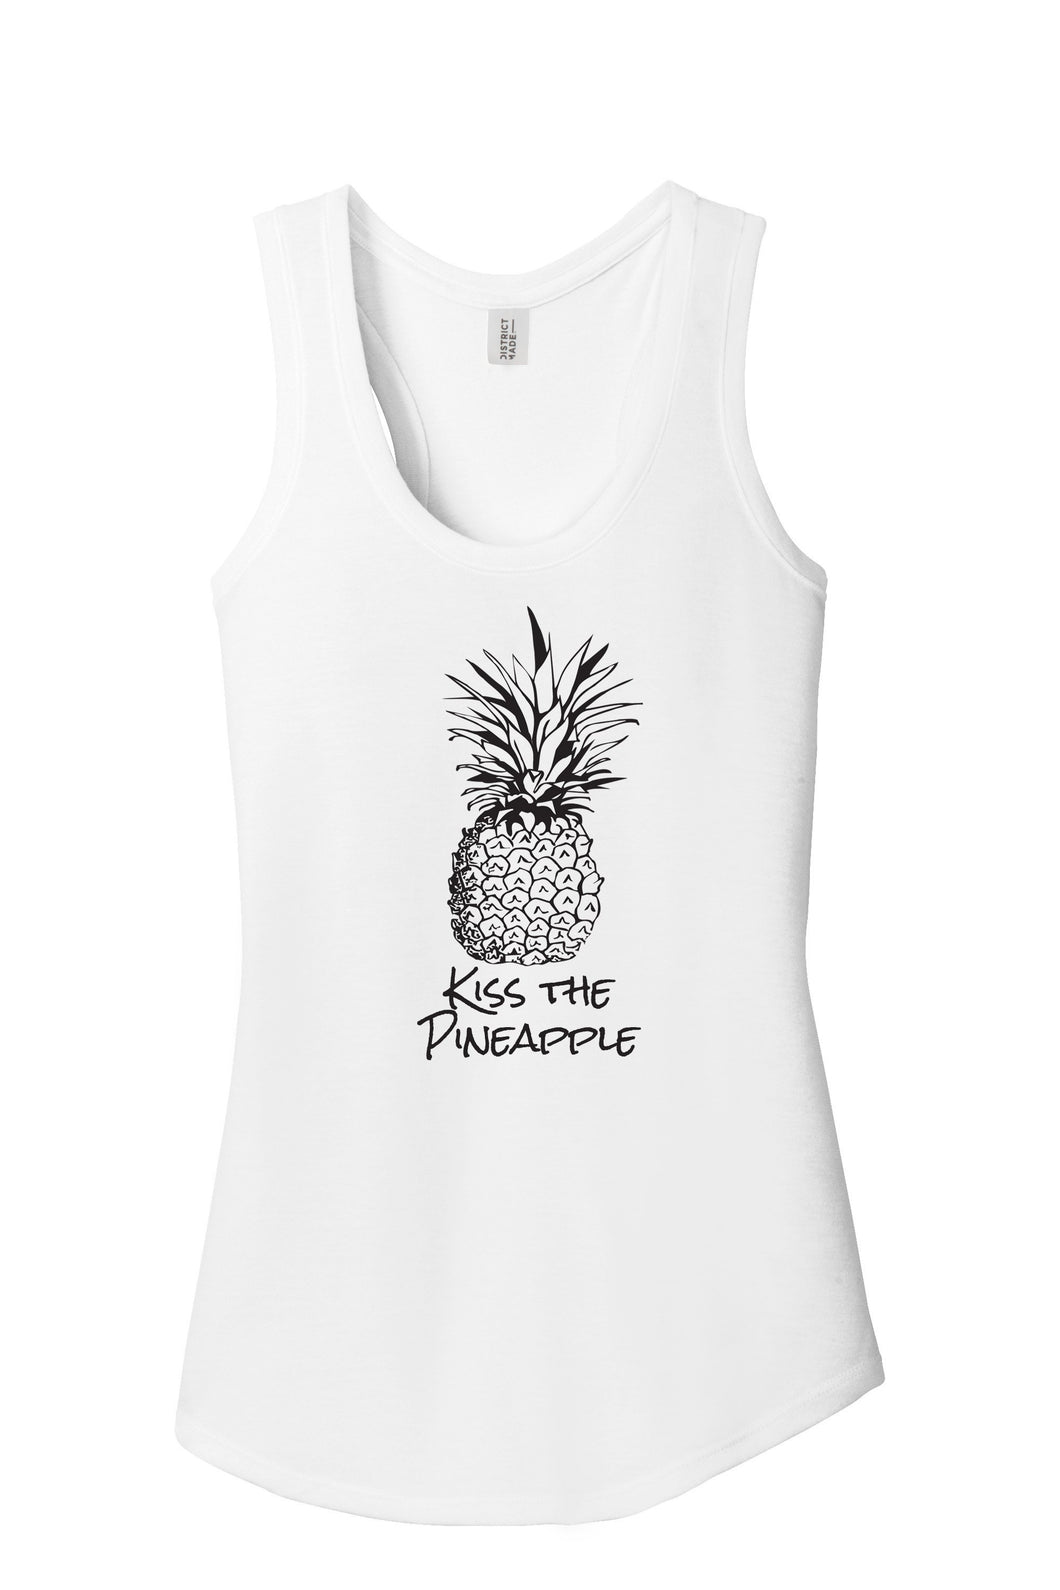 Kiss the Pineapple Women's Tank Top